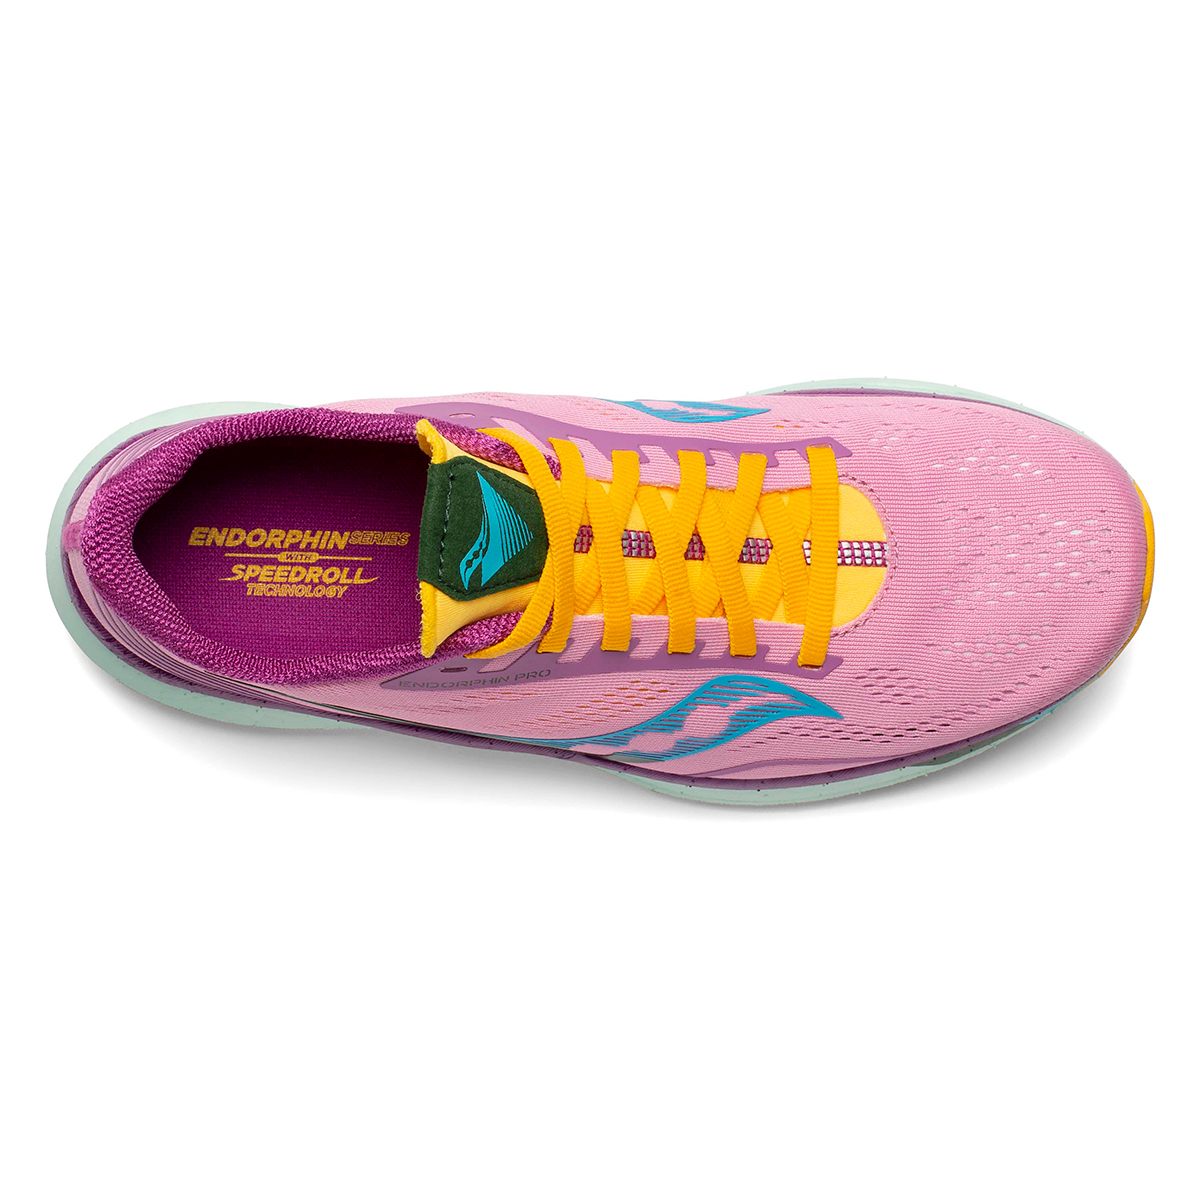 Women's Saucony Endorphin Pro Running Shoe - Color: Future/Pink - Size: 5 - Width: Regular, Future/Pink, large, image 3